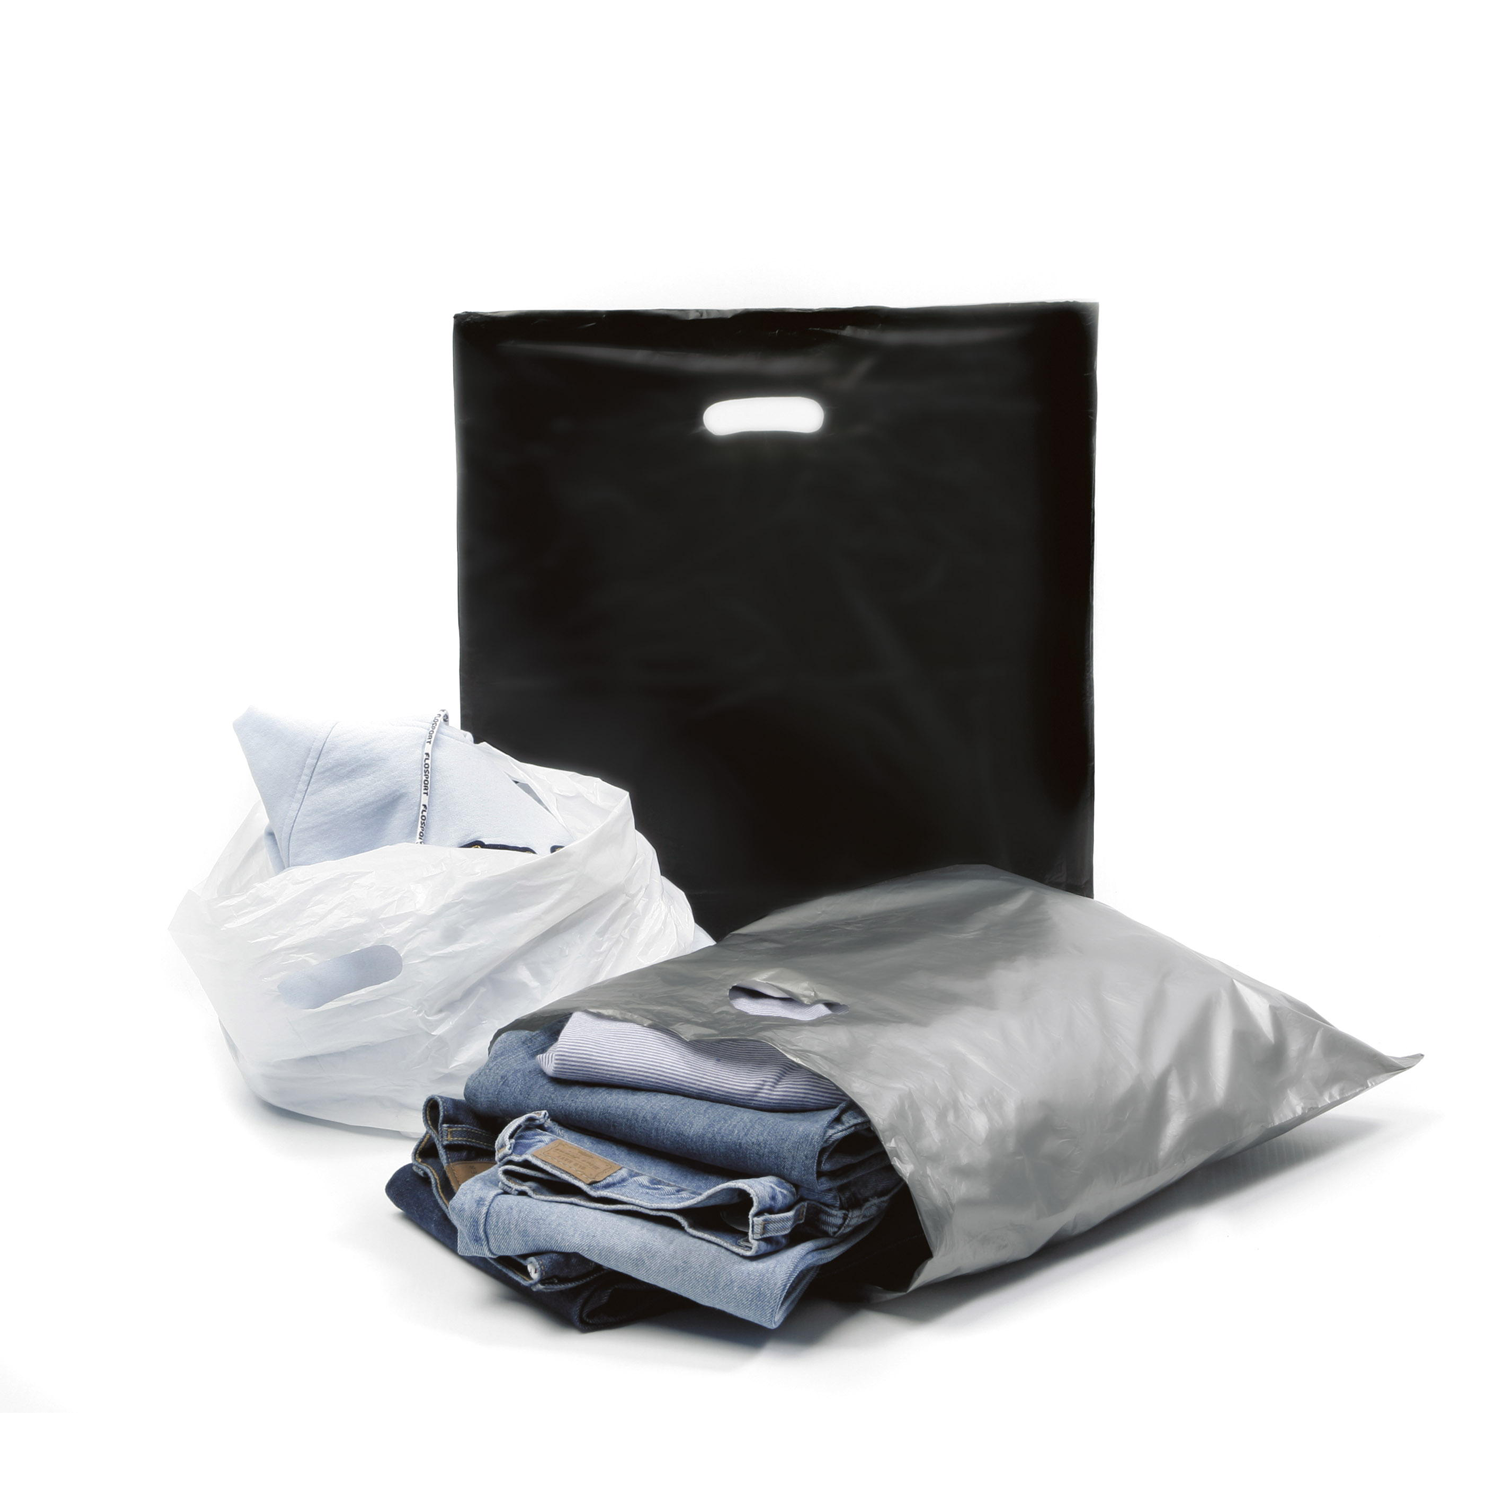 T-Shirts, Jeans and High Density Bags